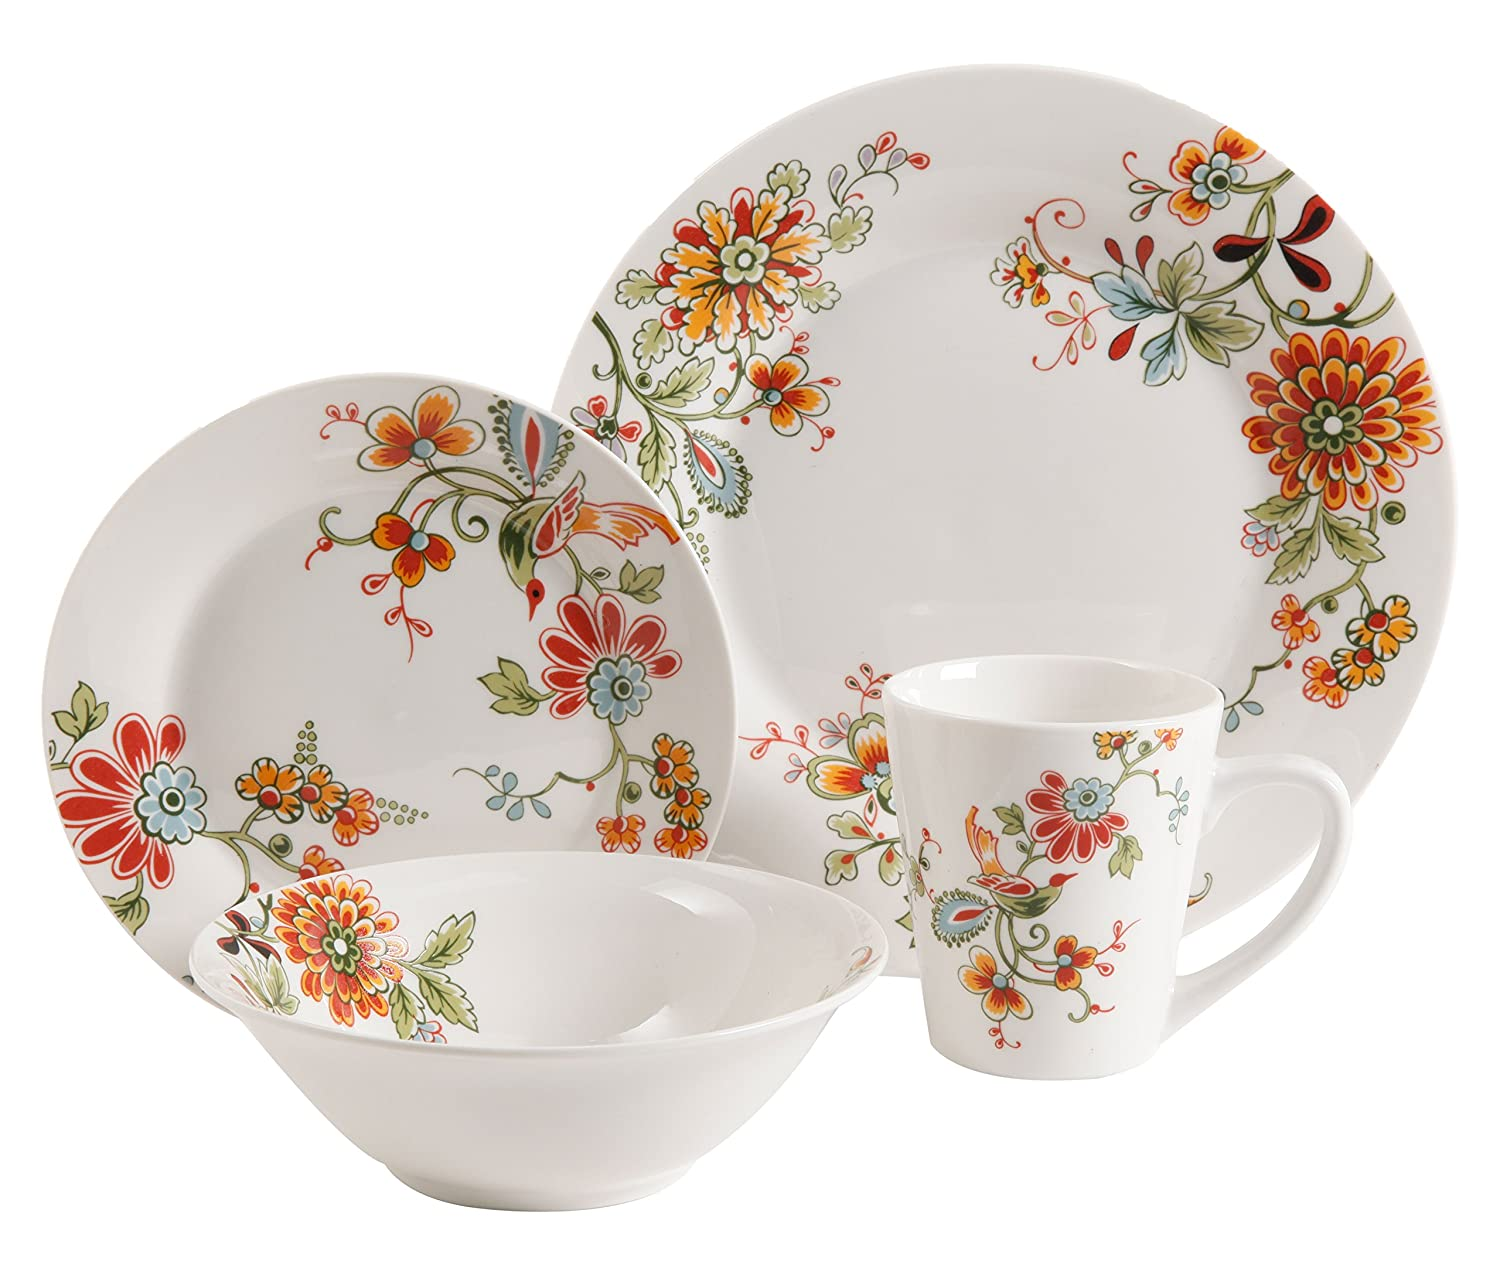 Amazon.com | Gibson 16 Piece Doraville Floral Dinnerware Set Multicolor Dinnerware Sets  sc 1 st  Amazon.com & Amazon.com | Gibson 16 Piece Doraville Floral Dinnerware Set ...